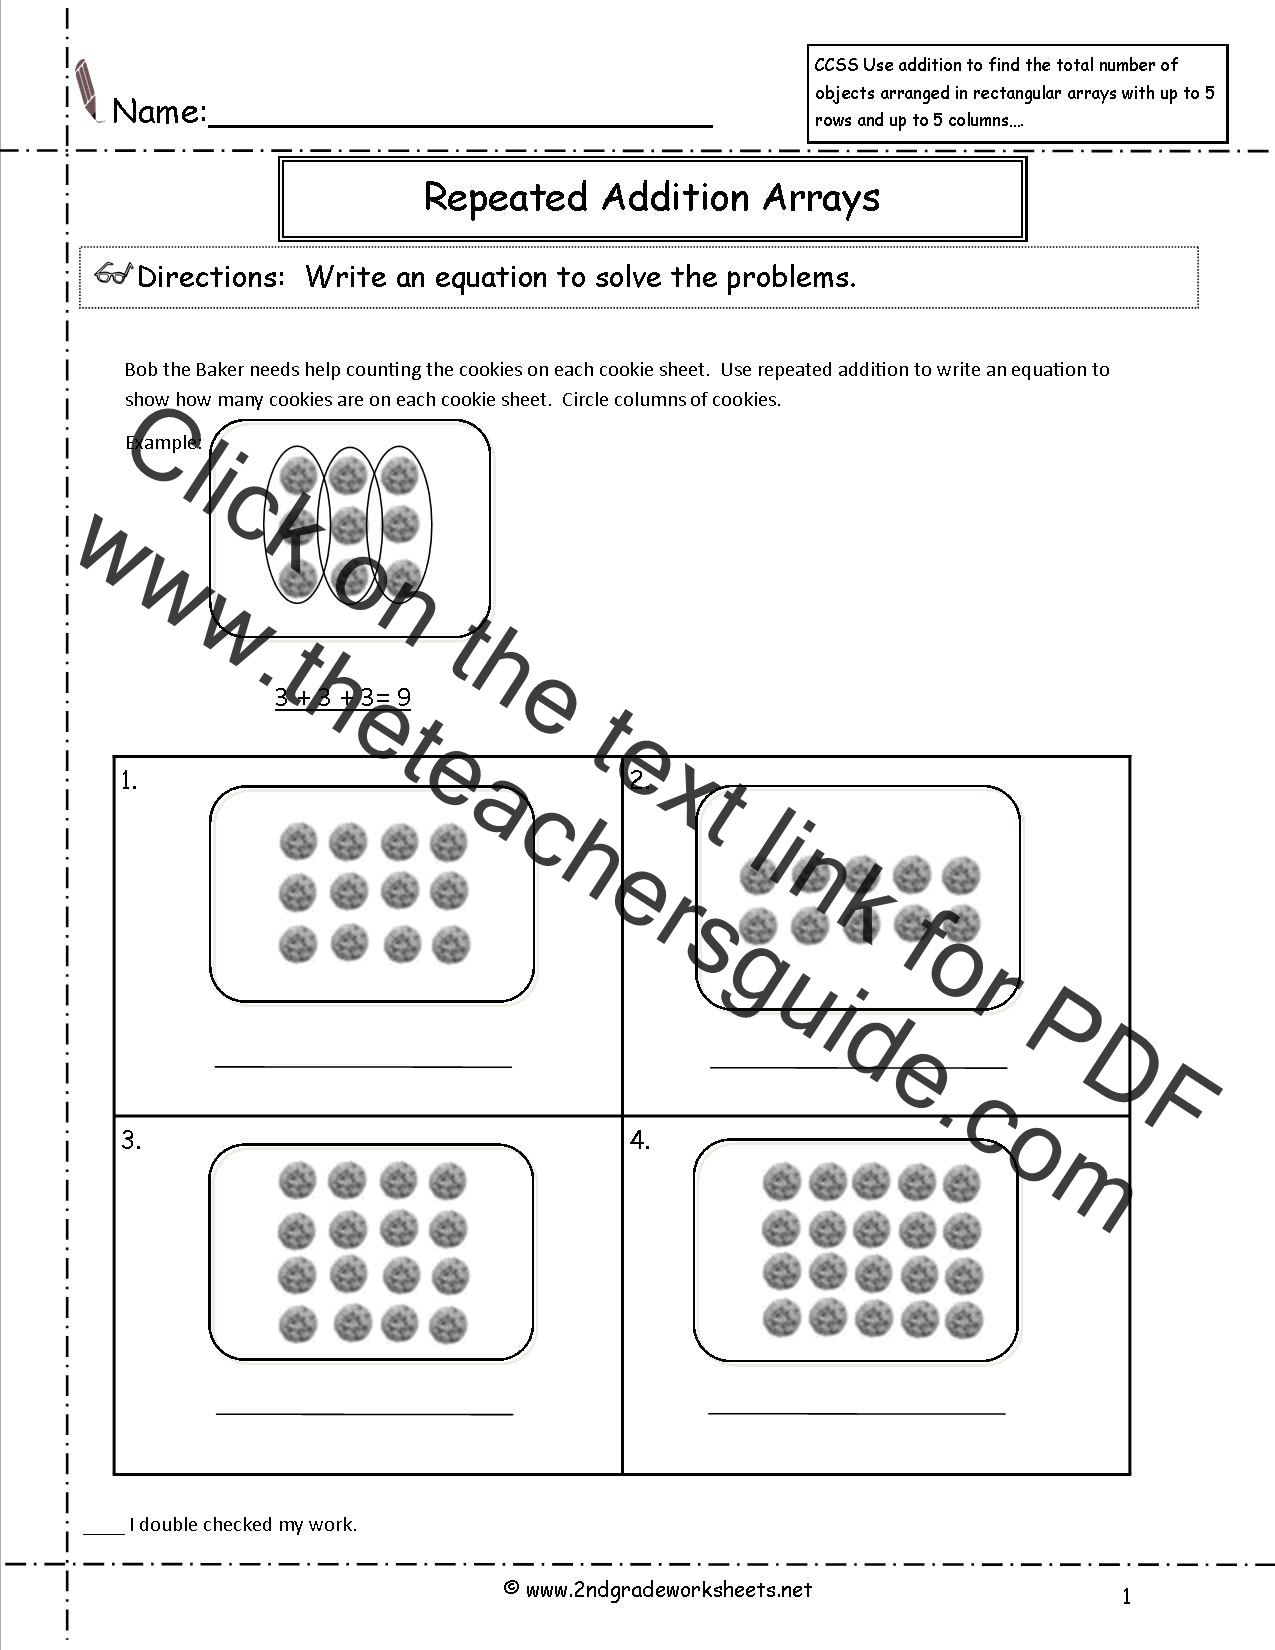 Free Worksheet Common Core Worksheets 7th Grade worksheet 12751650 ccss math worksheets 2nd grade common core state standards worksheets